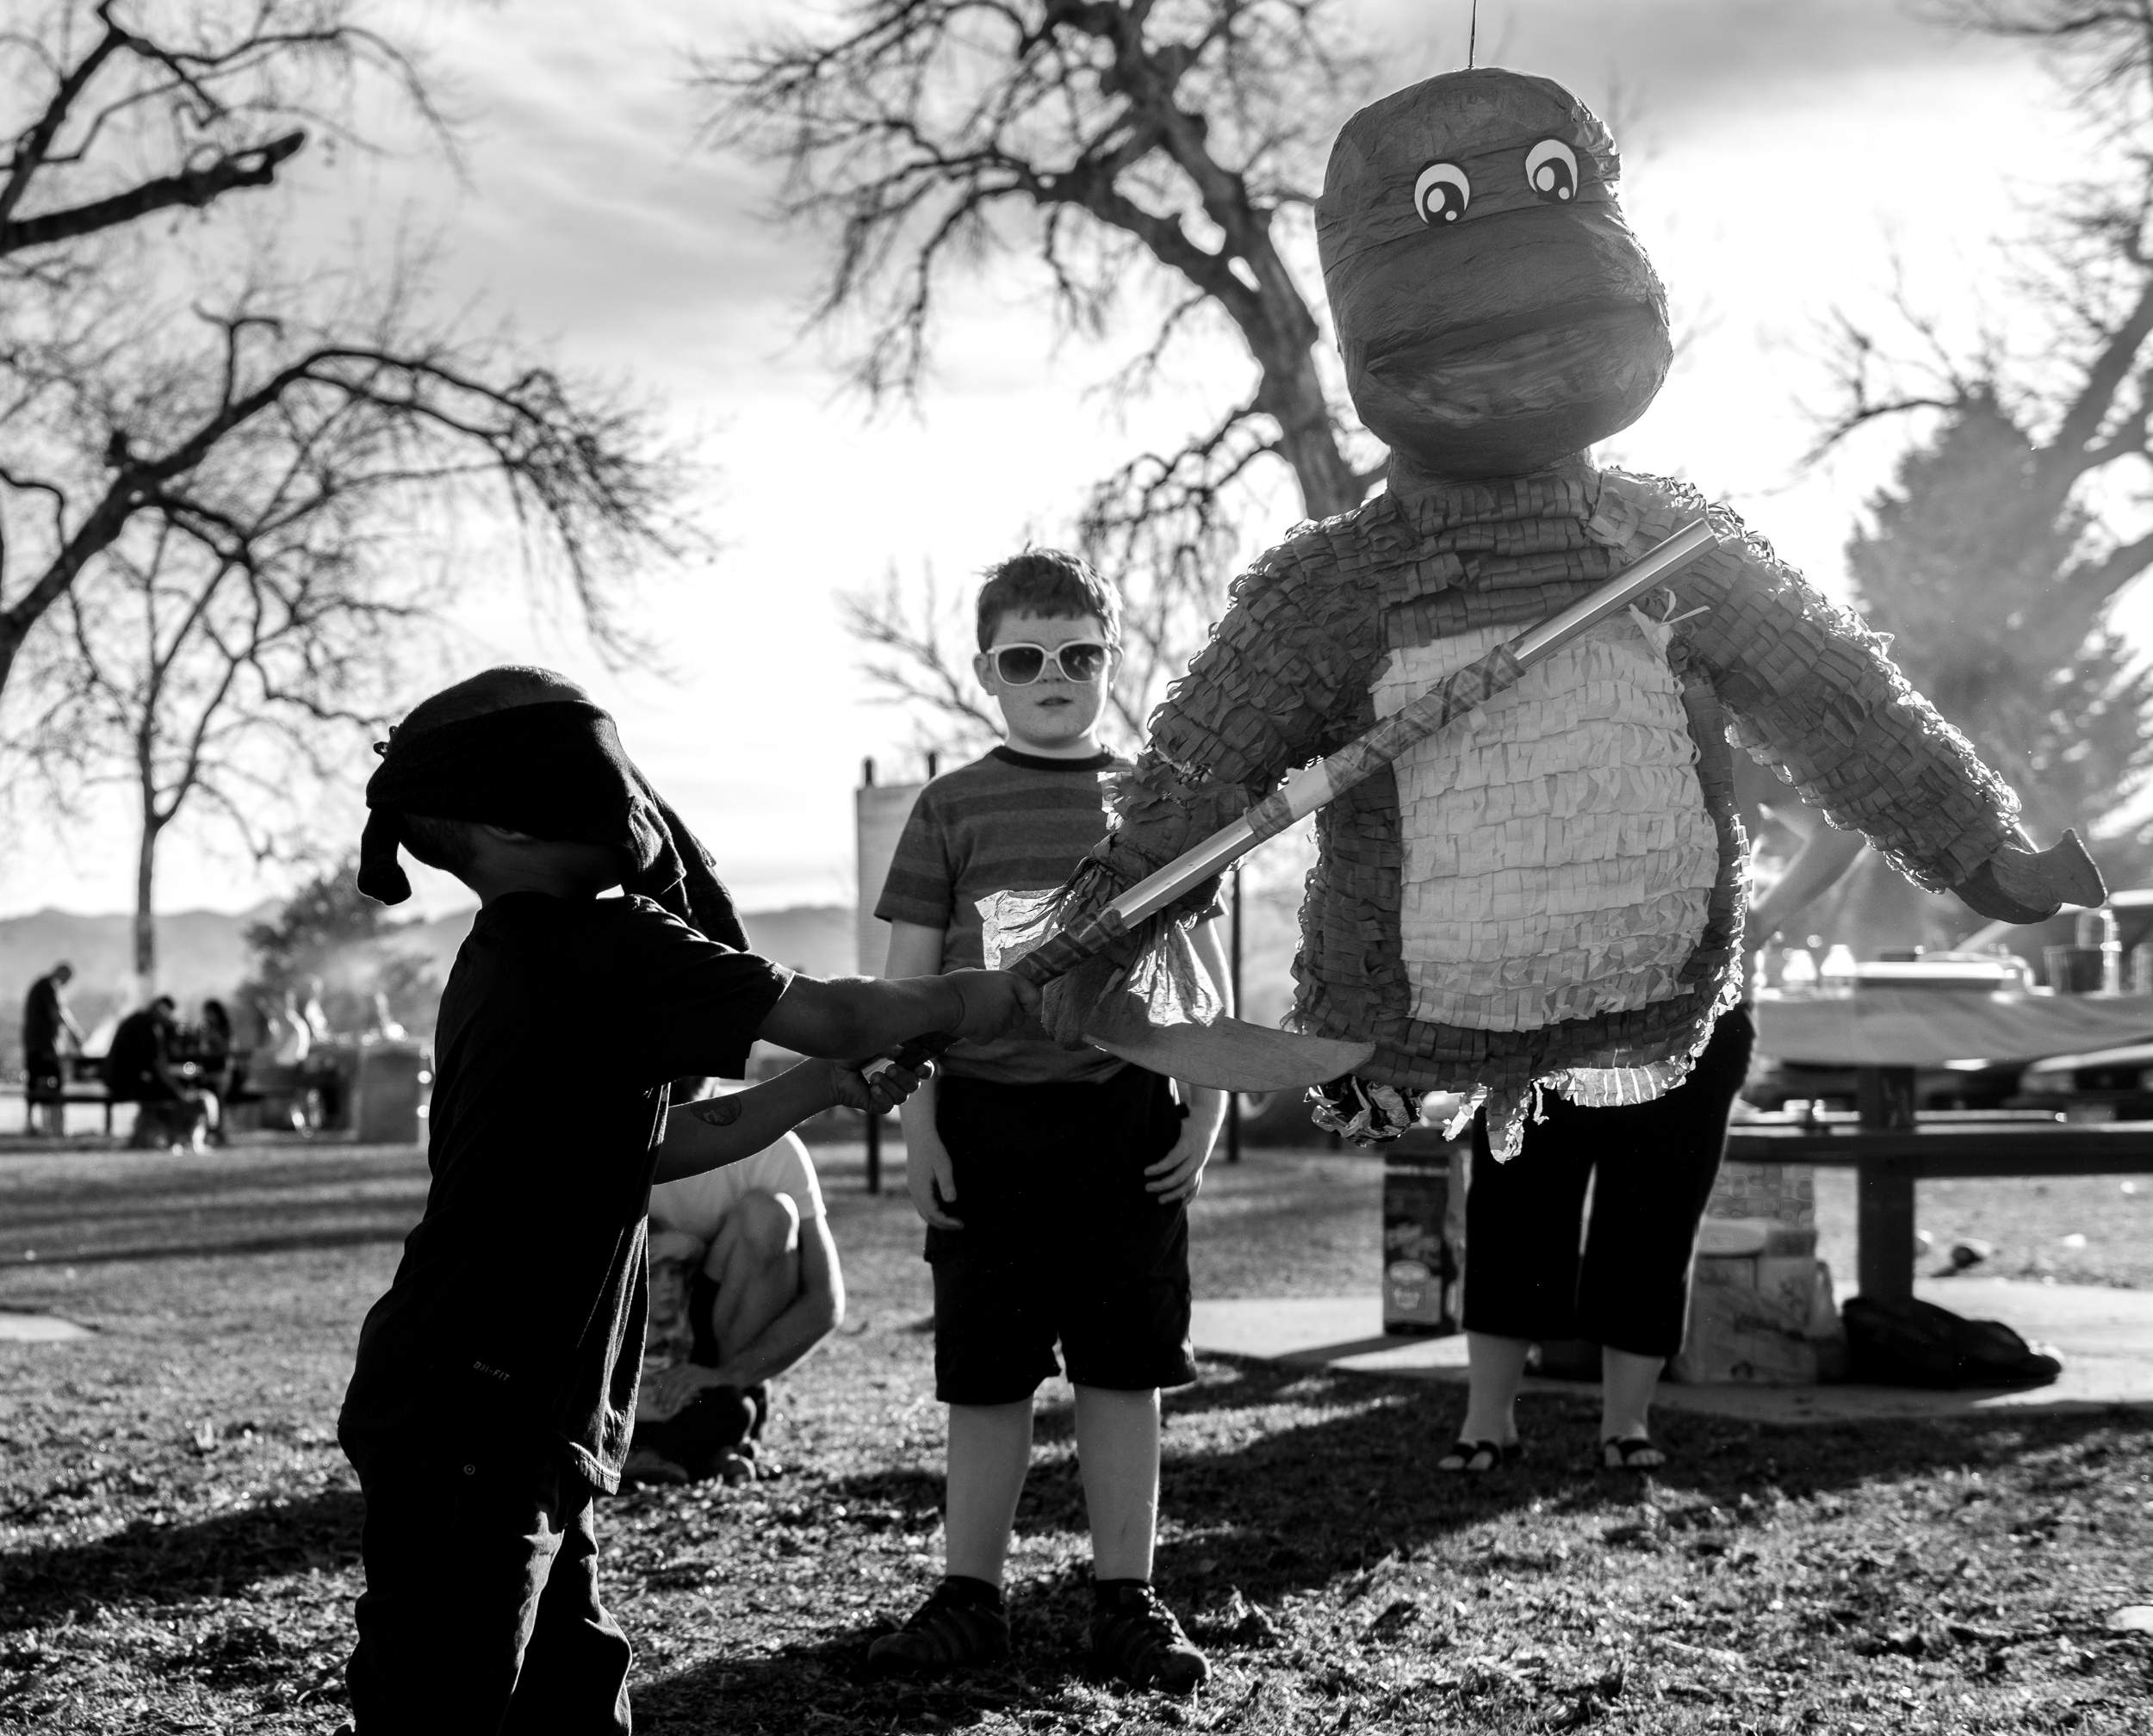 Blog - The Pen & Camera - Gratitude Journal, Inspirational, Writing, Denver, Colorado, Friendship -  Molly Rees Photo - Black and White Documentary Childhood Photography - boy with pinata at birthday party by M. Menschel